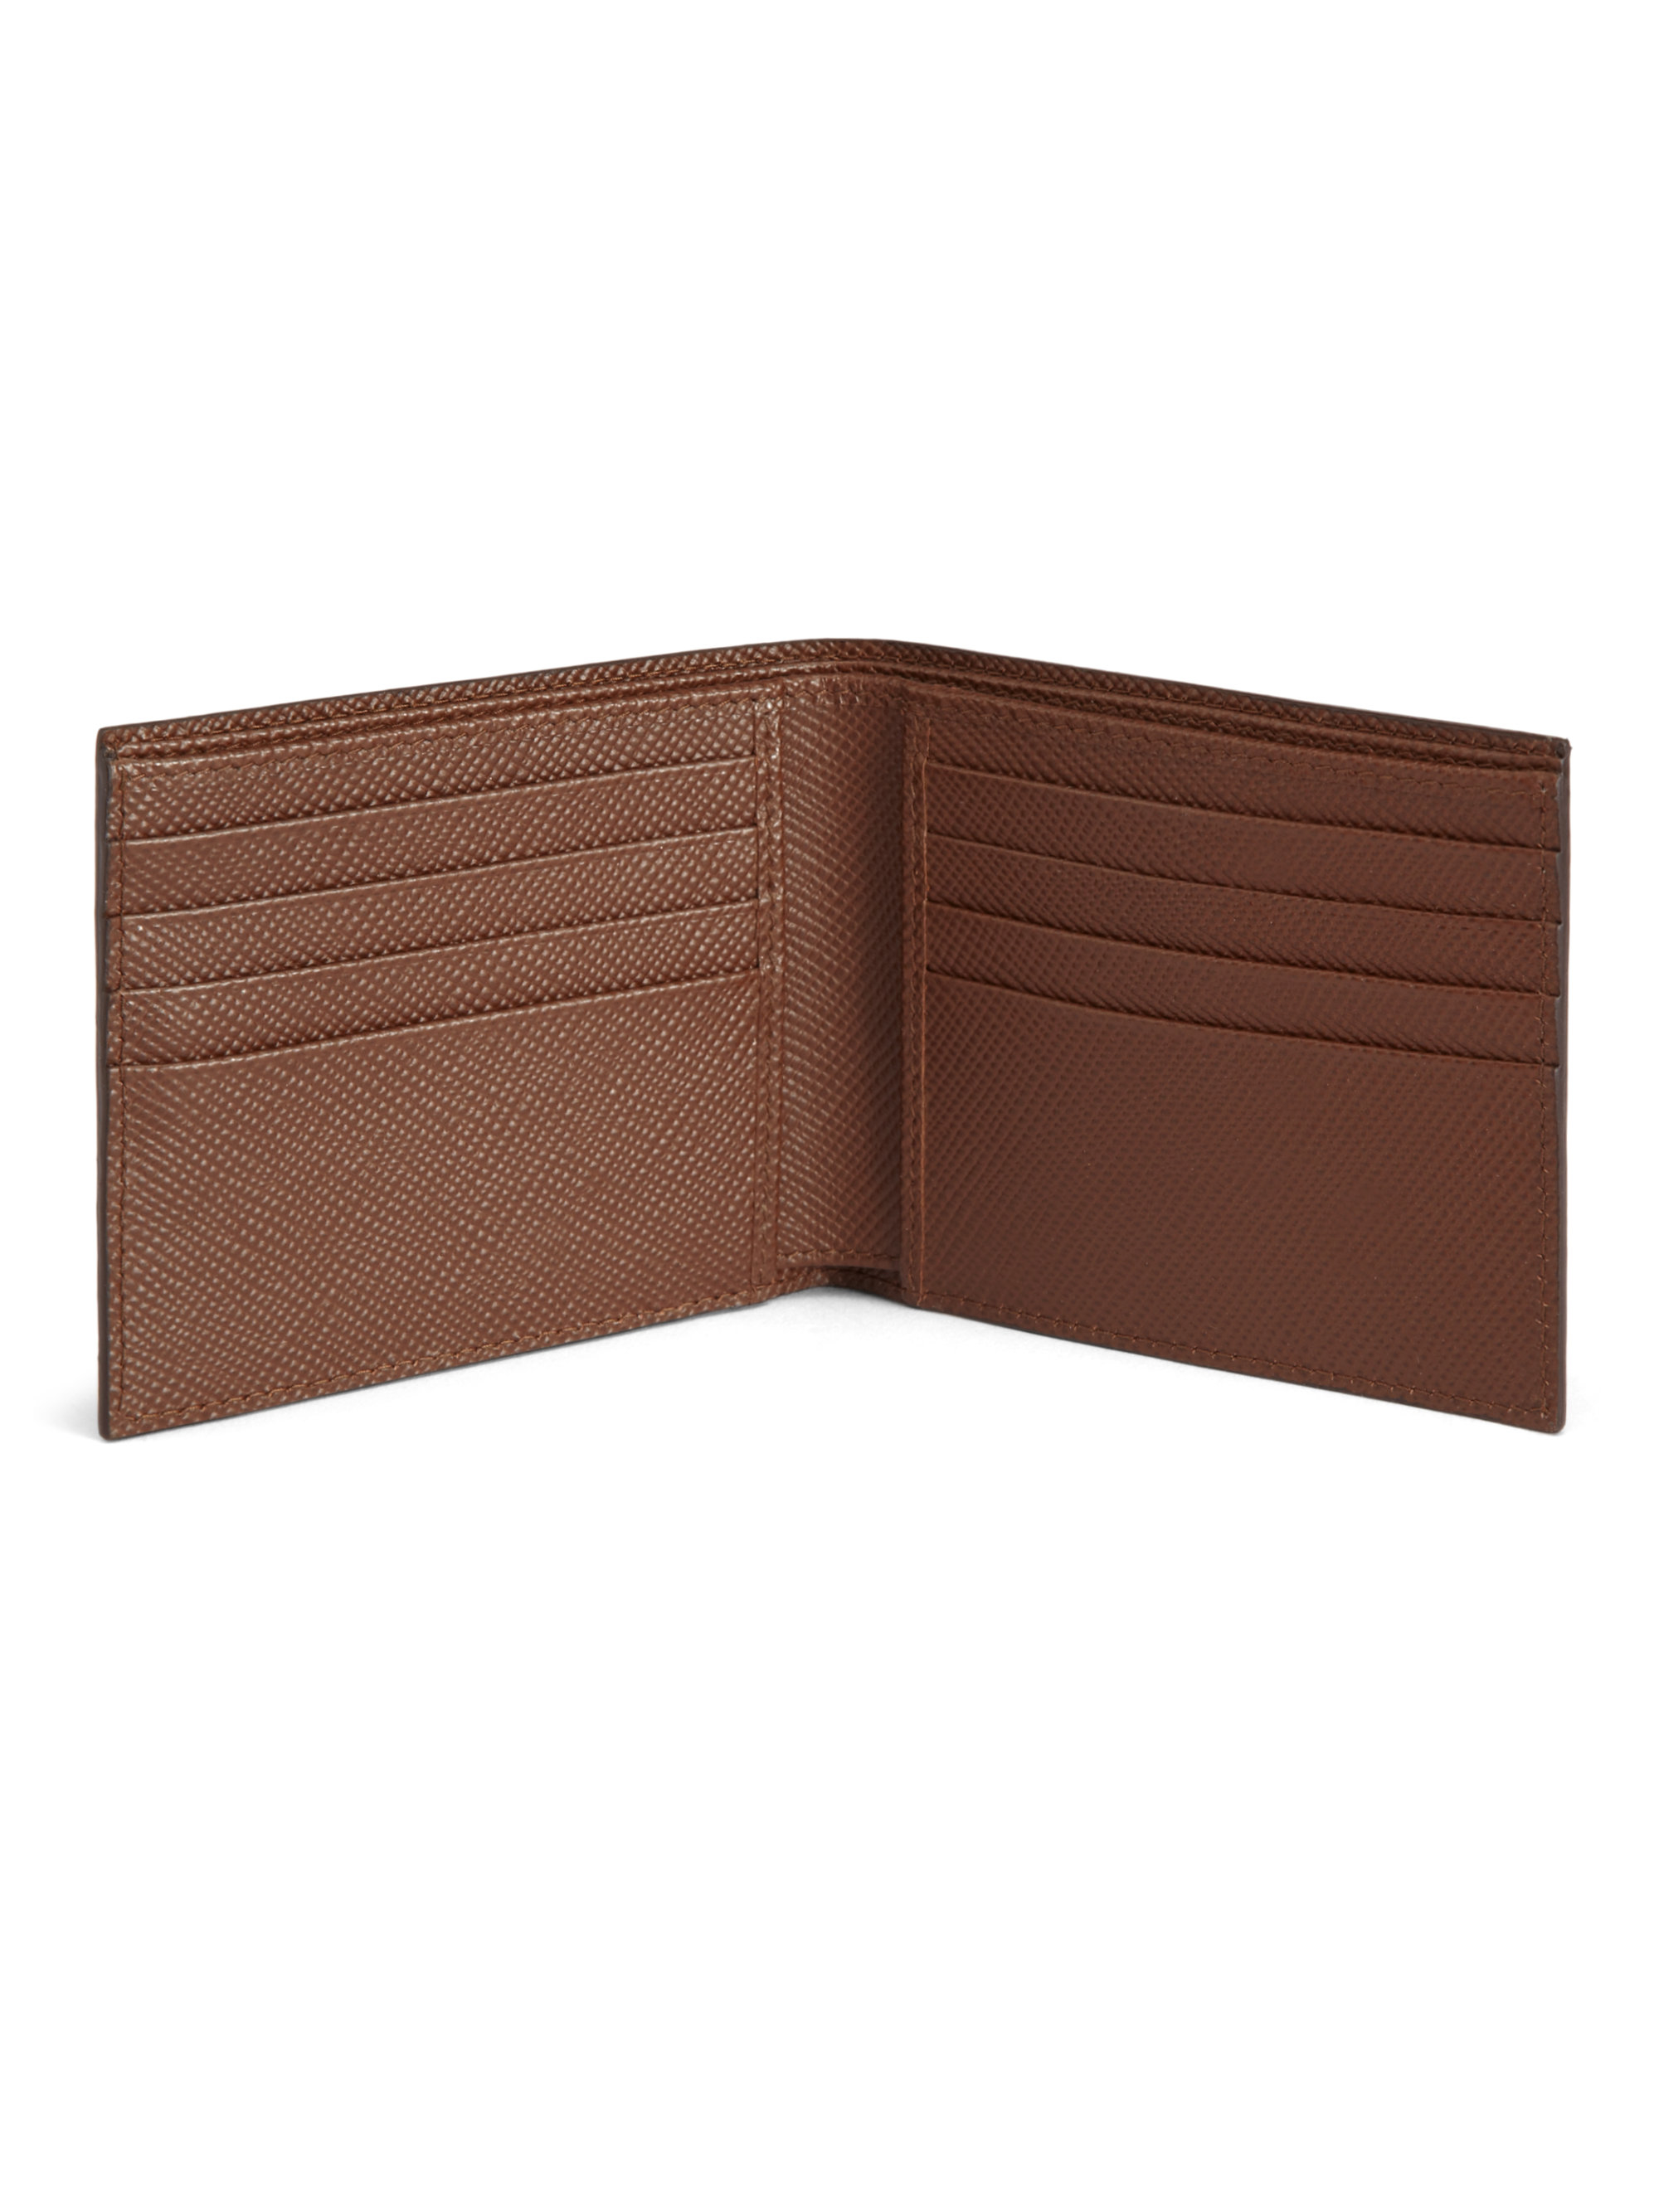 e806be88a76a2a Lyst - Prada Saffiano Cuir Striped Bifold Wallet in Brown for Men